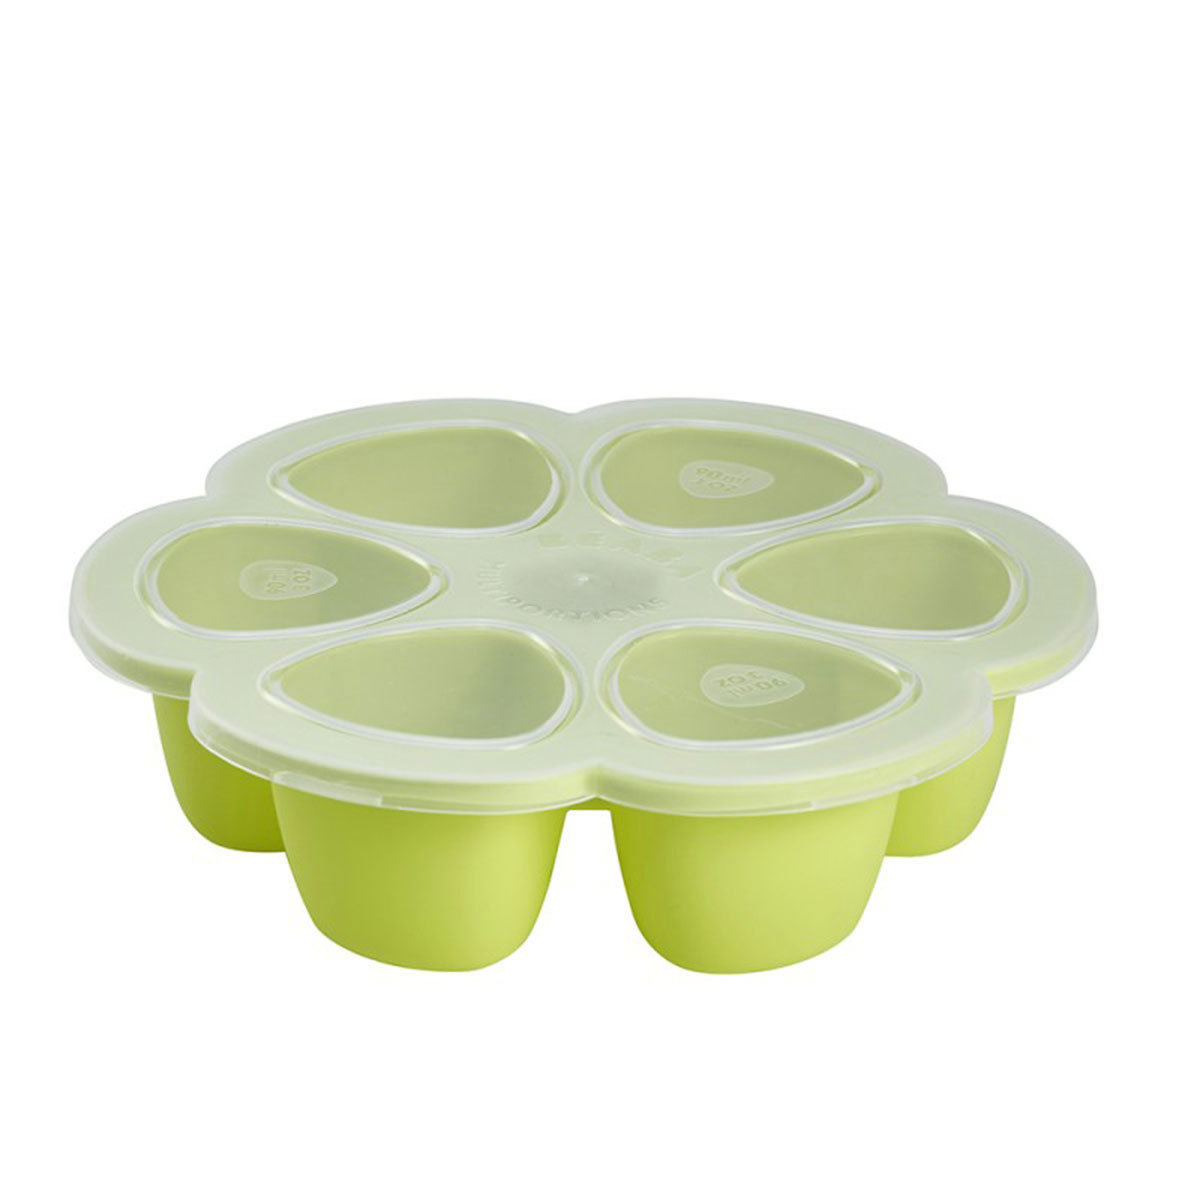 Vaisselle & Couvert Multi Portions Silicone 6 x 150 ml Néon Multi Portions Silicone 6 x 150 ml Néon